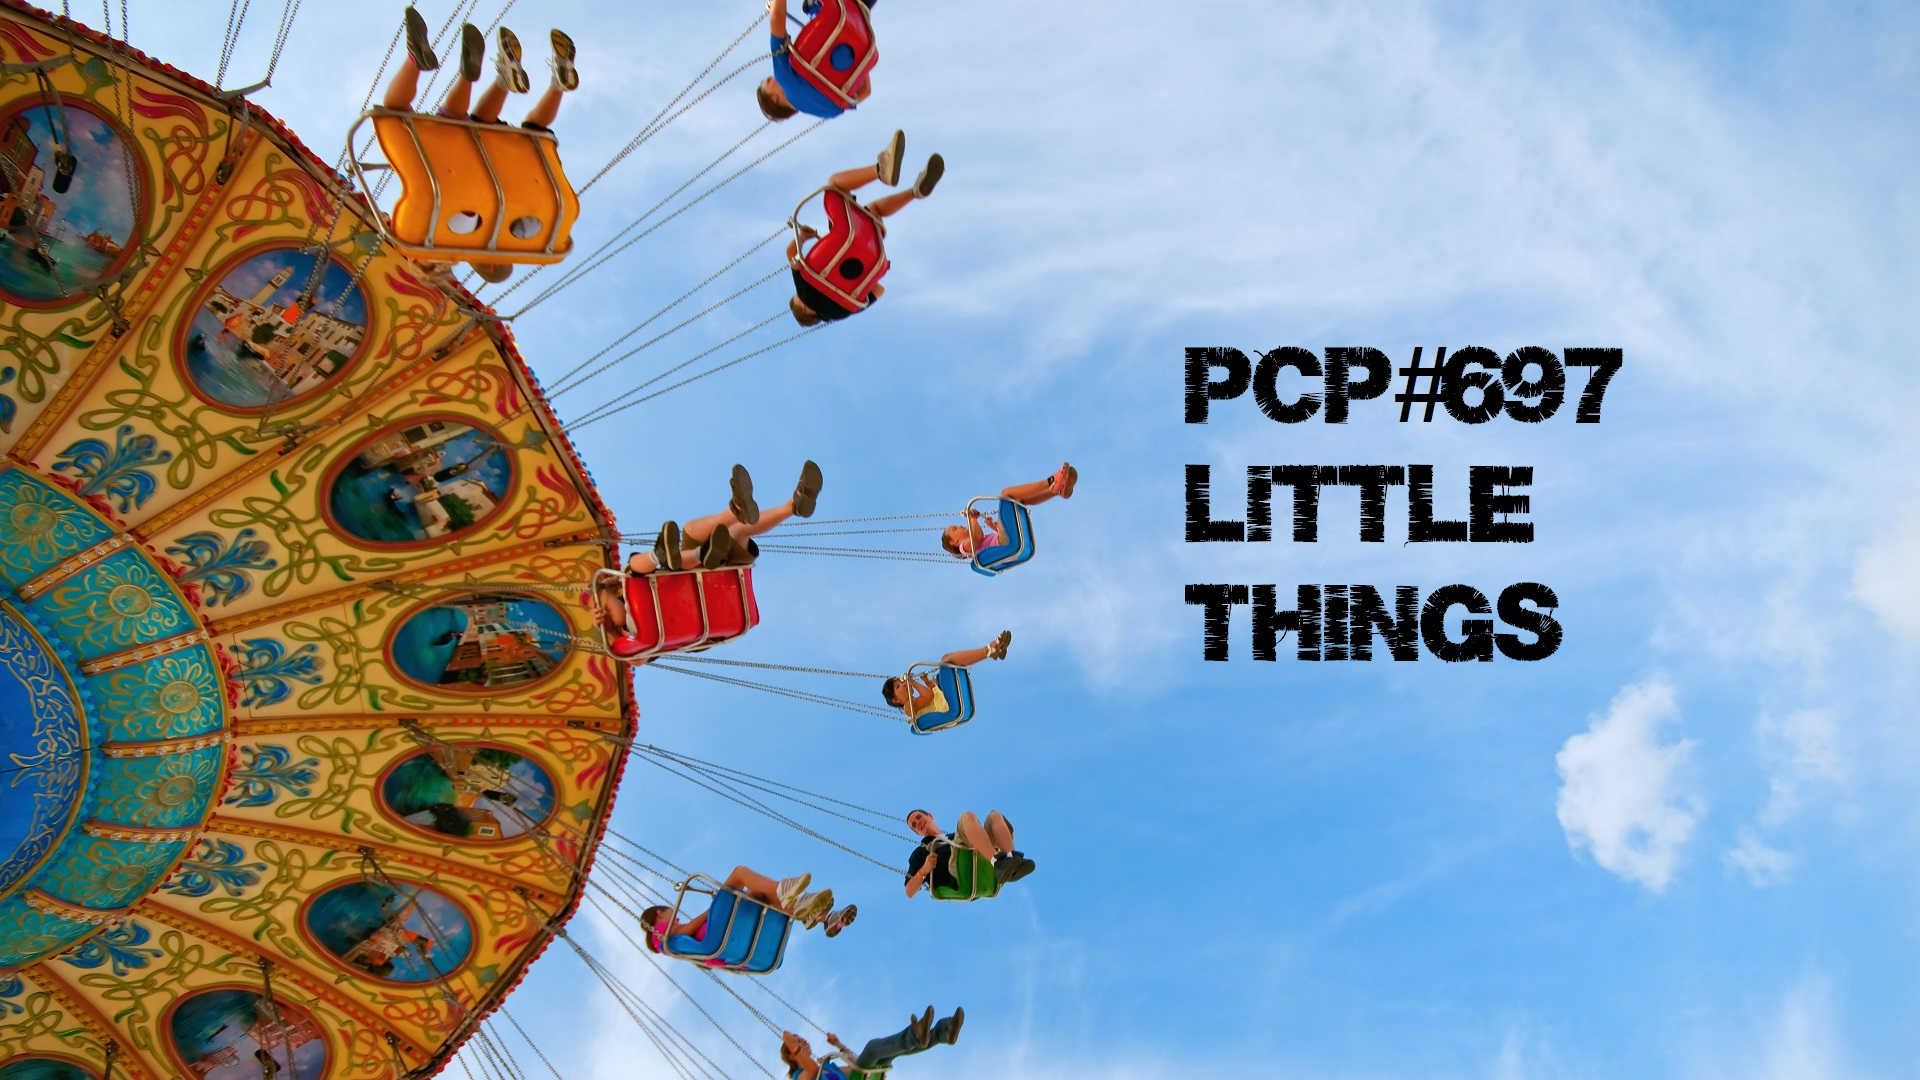 PCP#697... Little Things.....